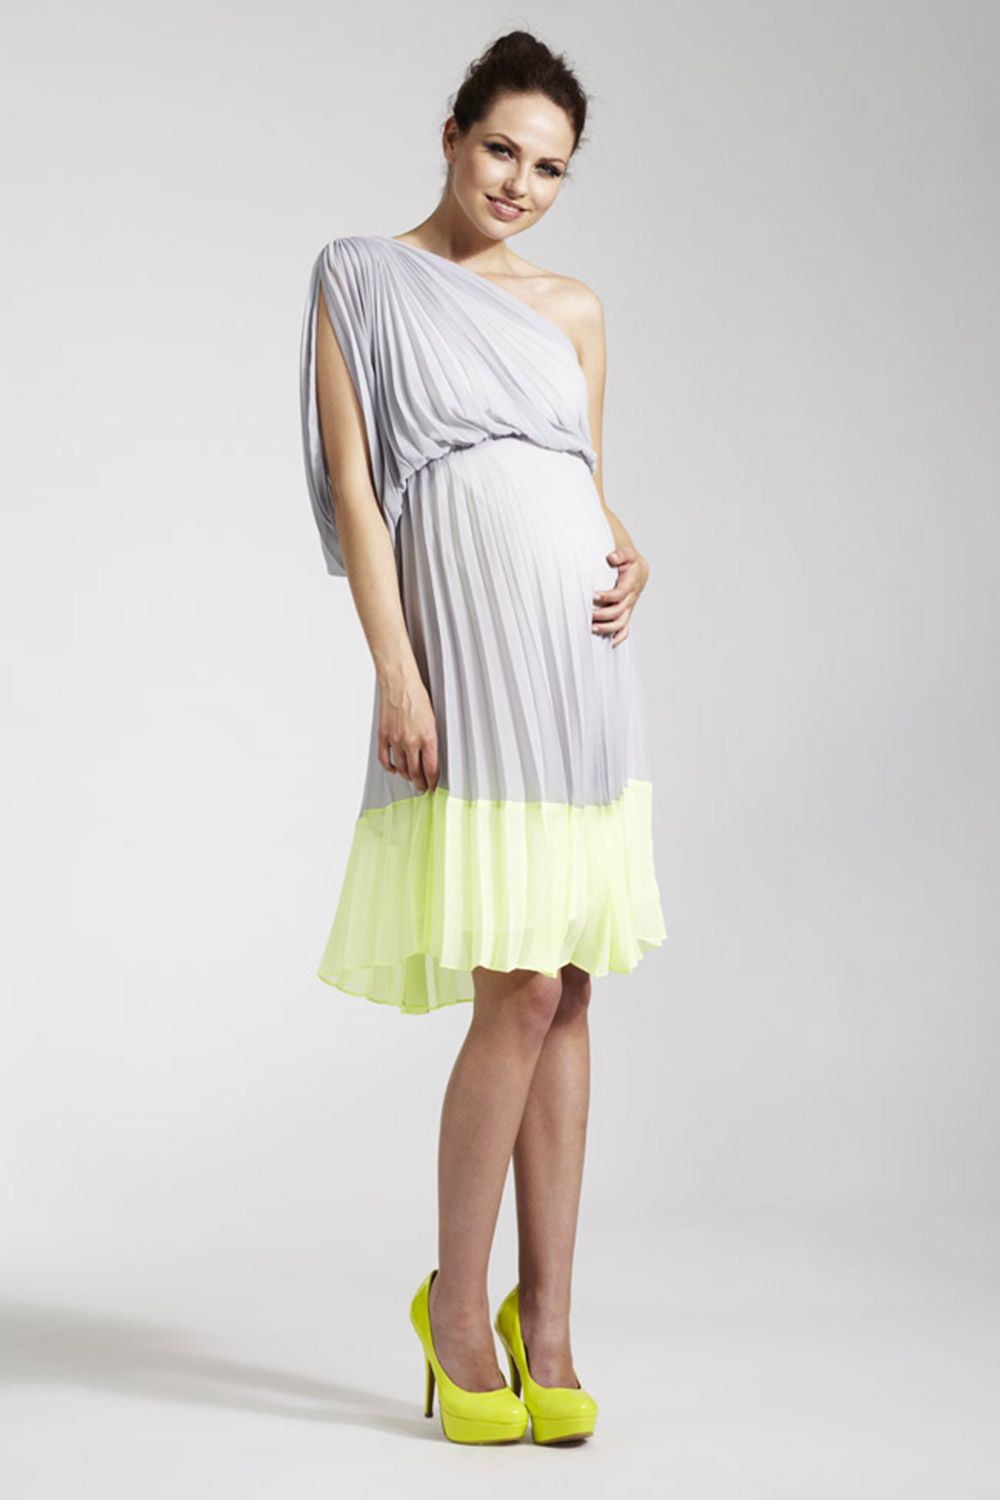 The Best Maternity Wedding Guest Dresses | Maternity wedding guest ...